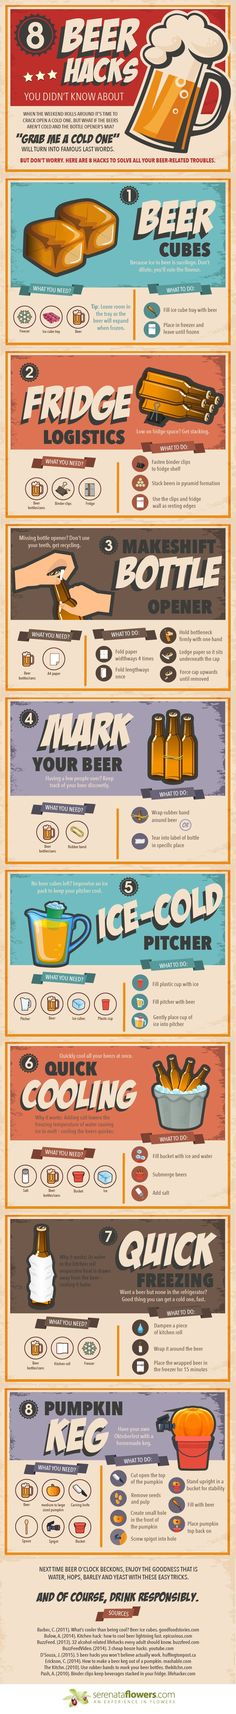 8 Fun Beer Hacks.